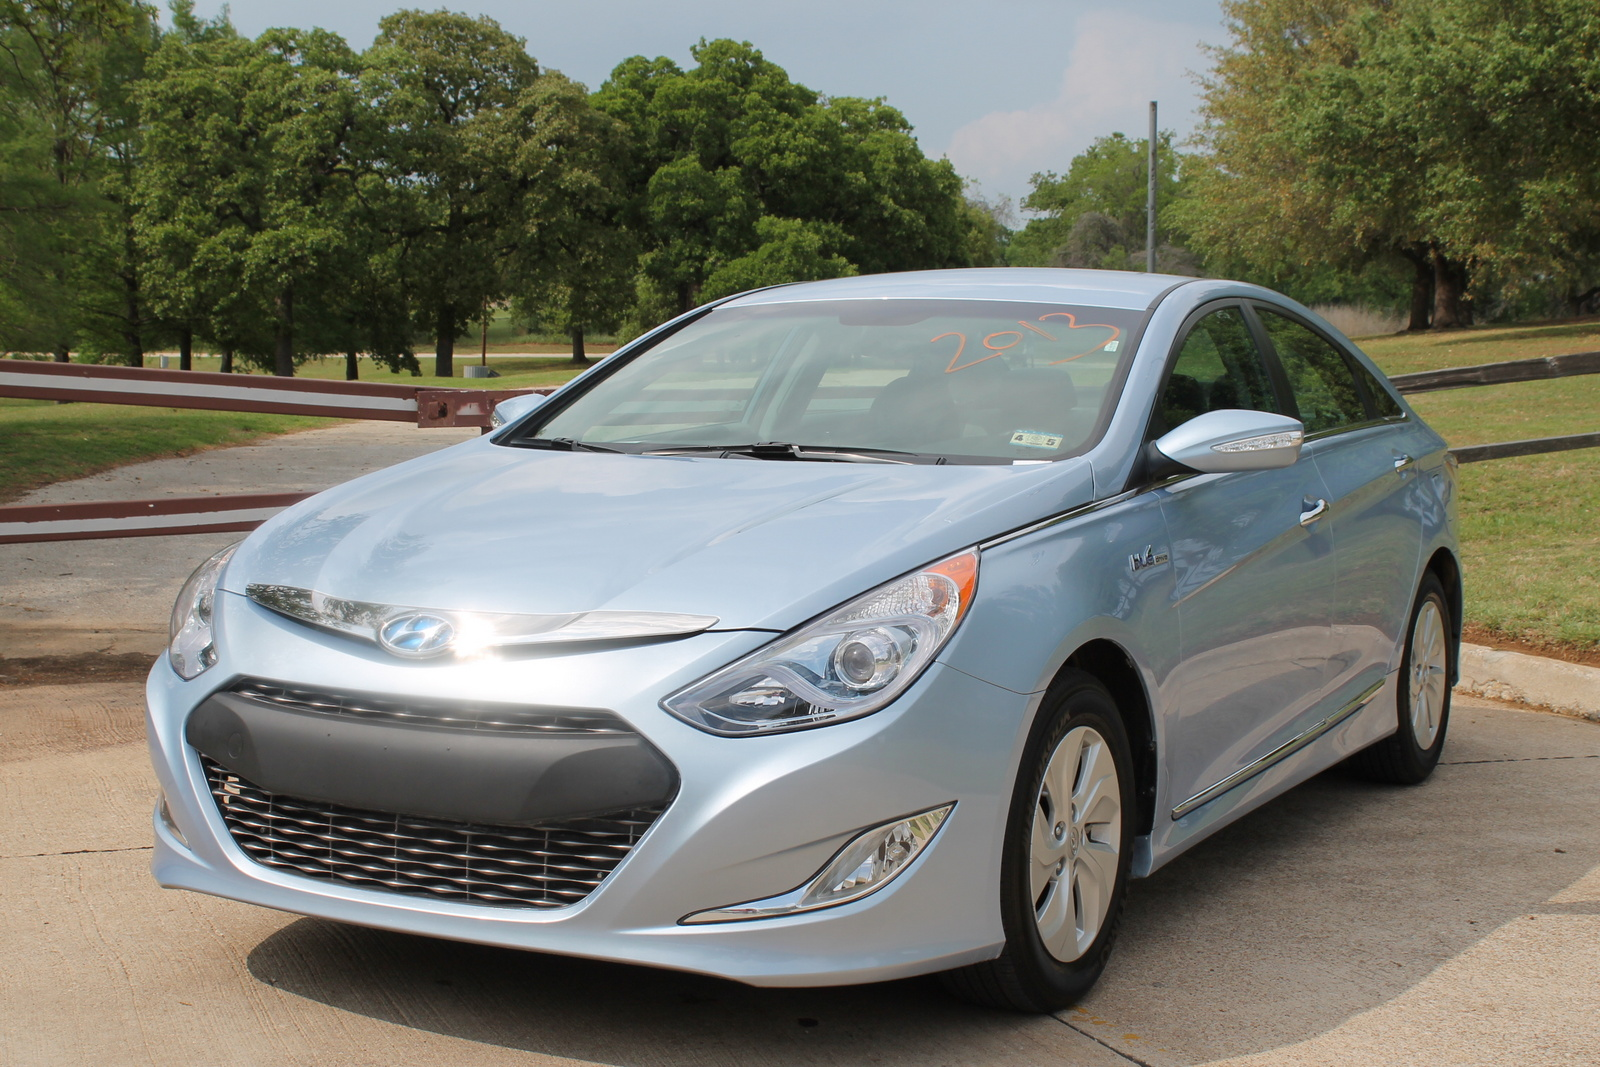 2013 hyundai sonata hybrid pictures cargurus. Black Bedroom Furniture Sets. Home Design Ideas